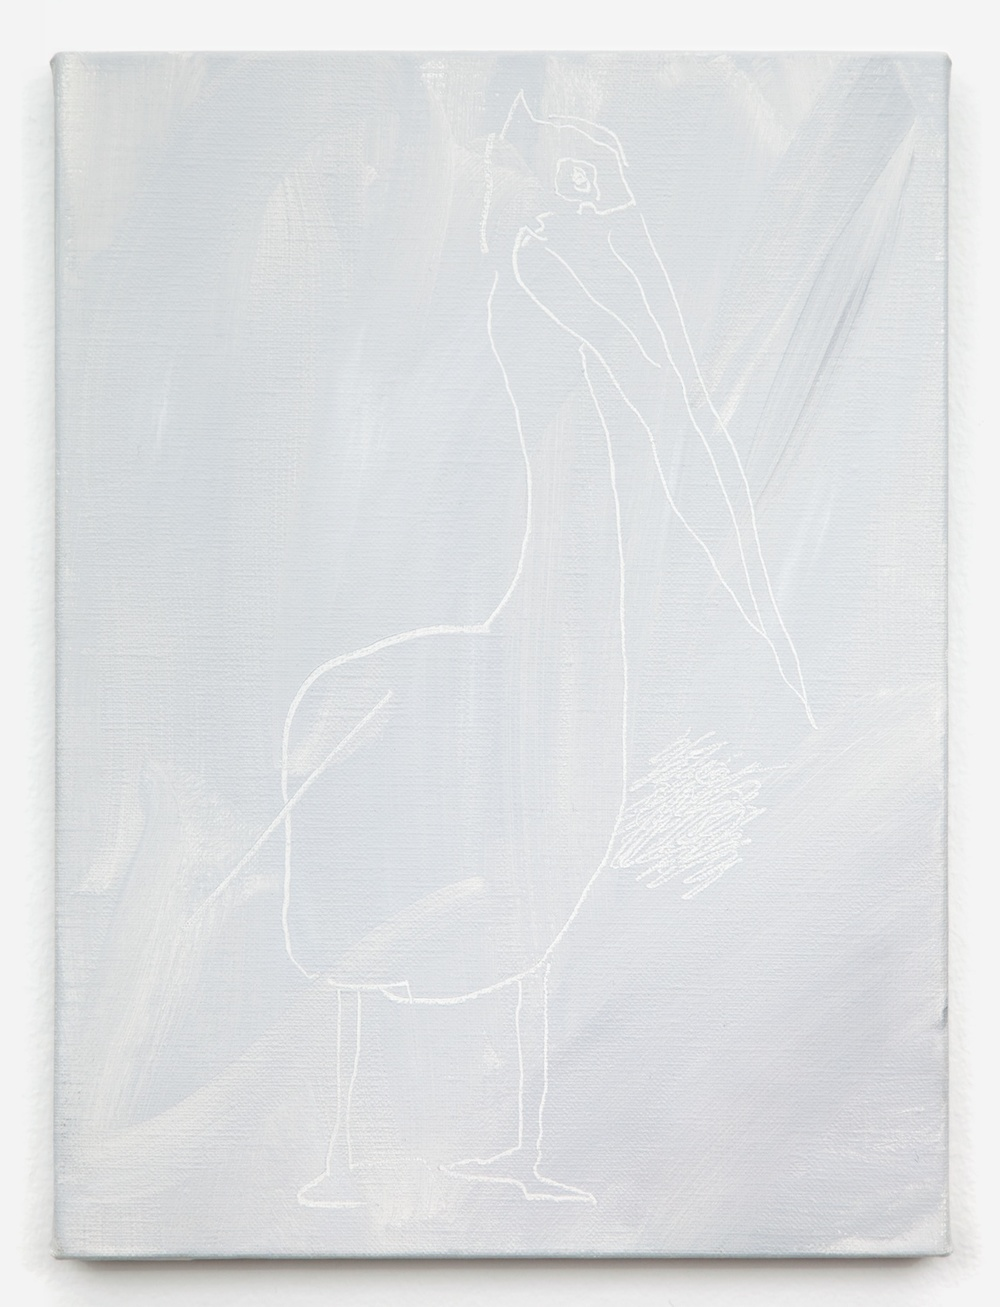 "Shimon Minamikawa Gray Gray, Pelican 2011 Acrylic on canvas 13"" x 9 19/48"" SMin001"